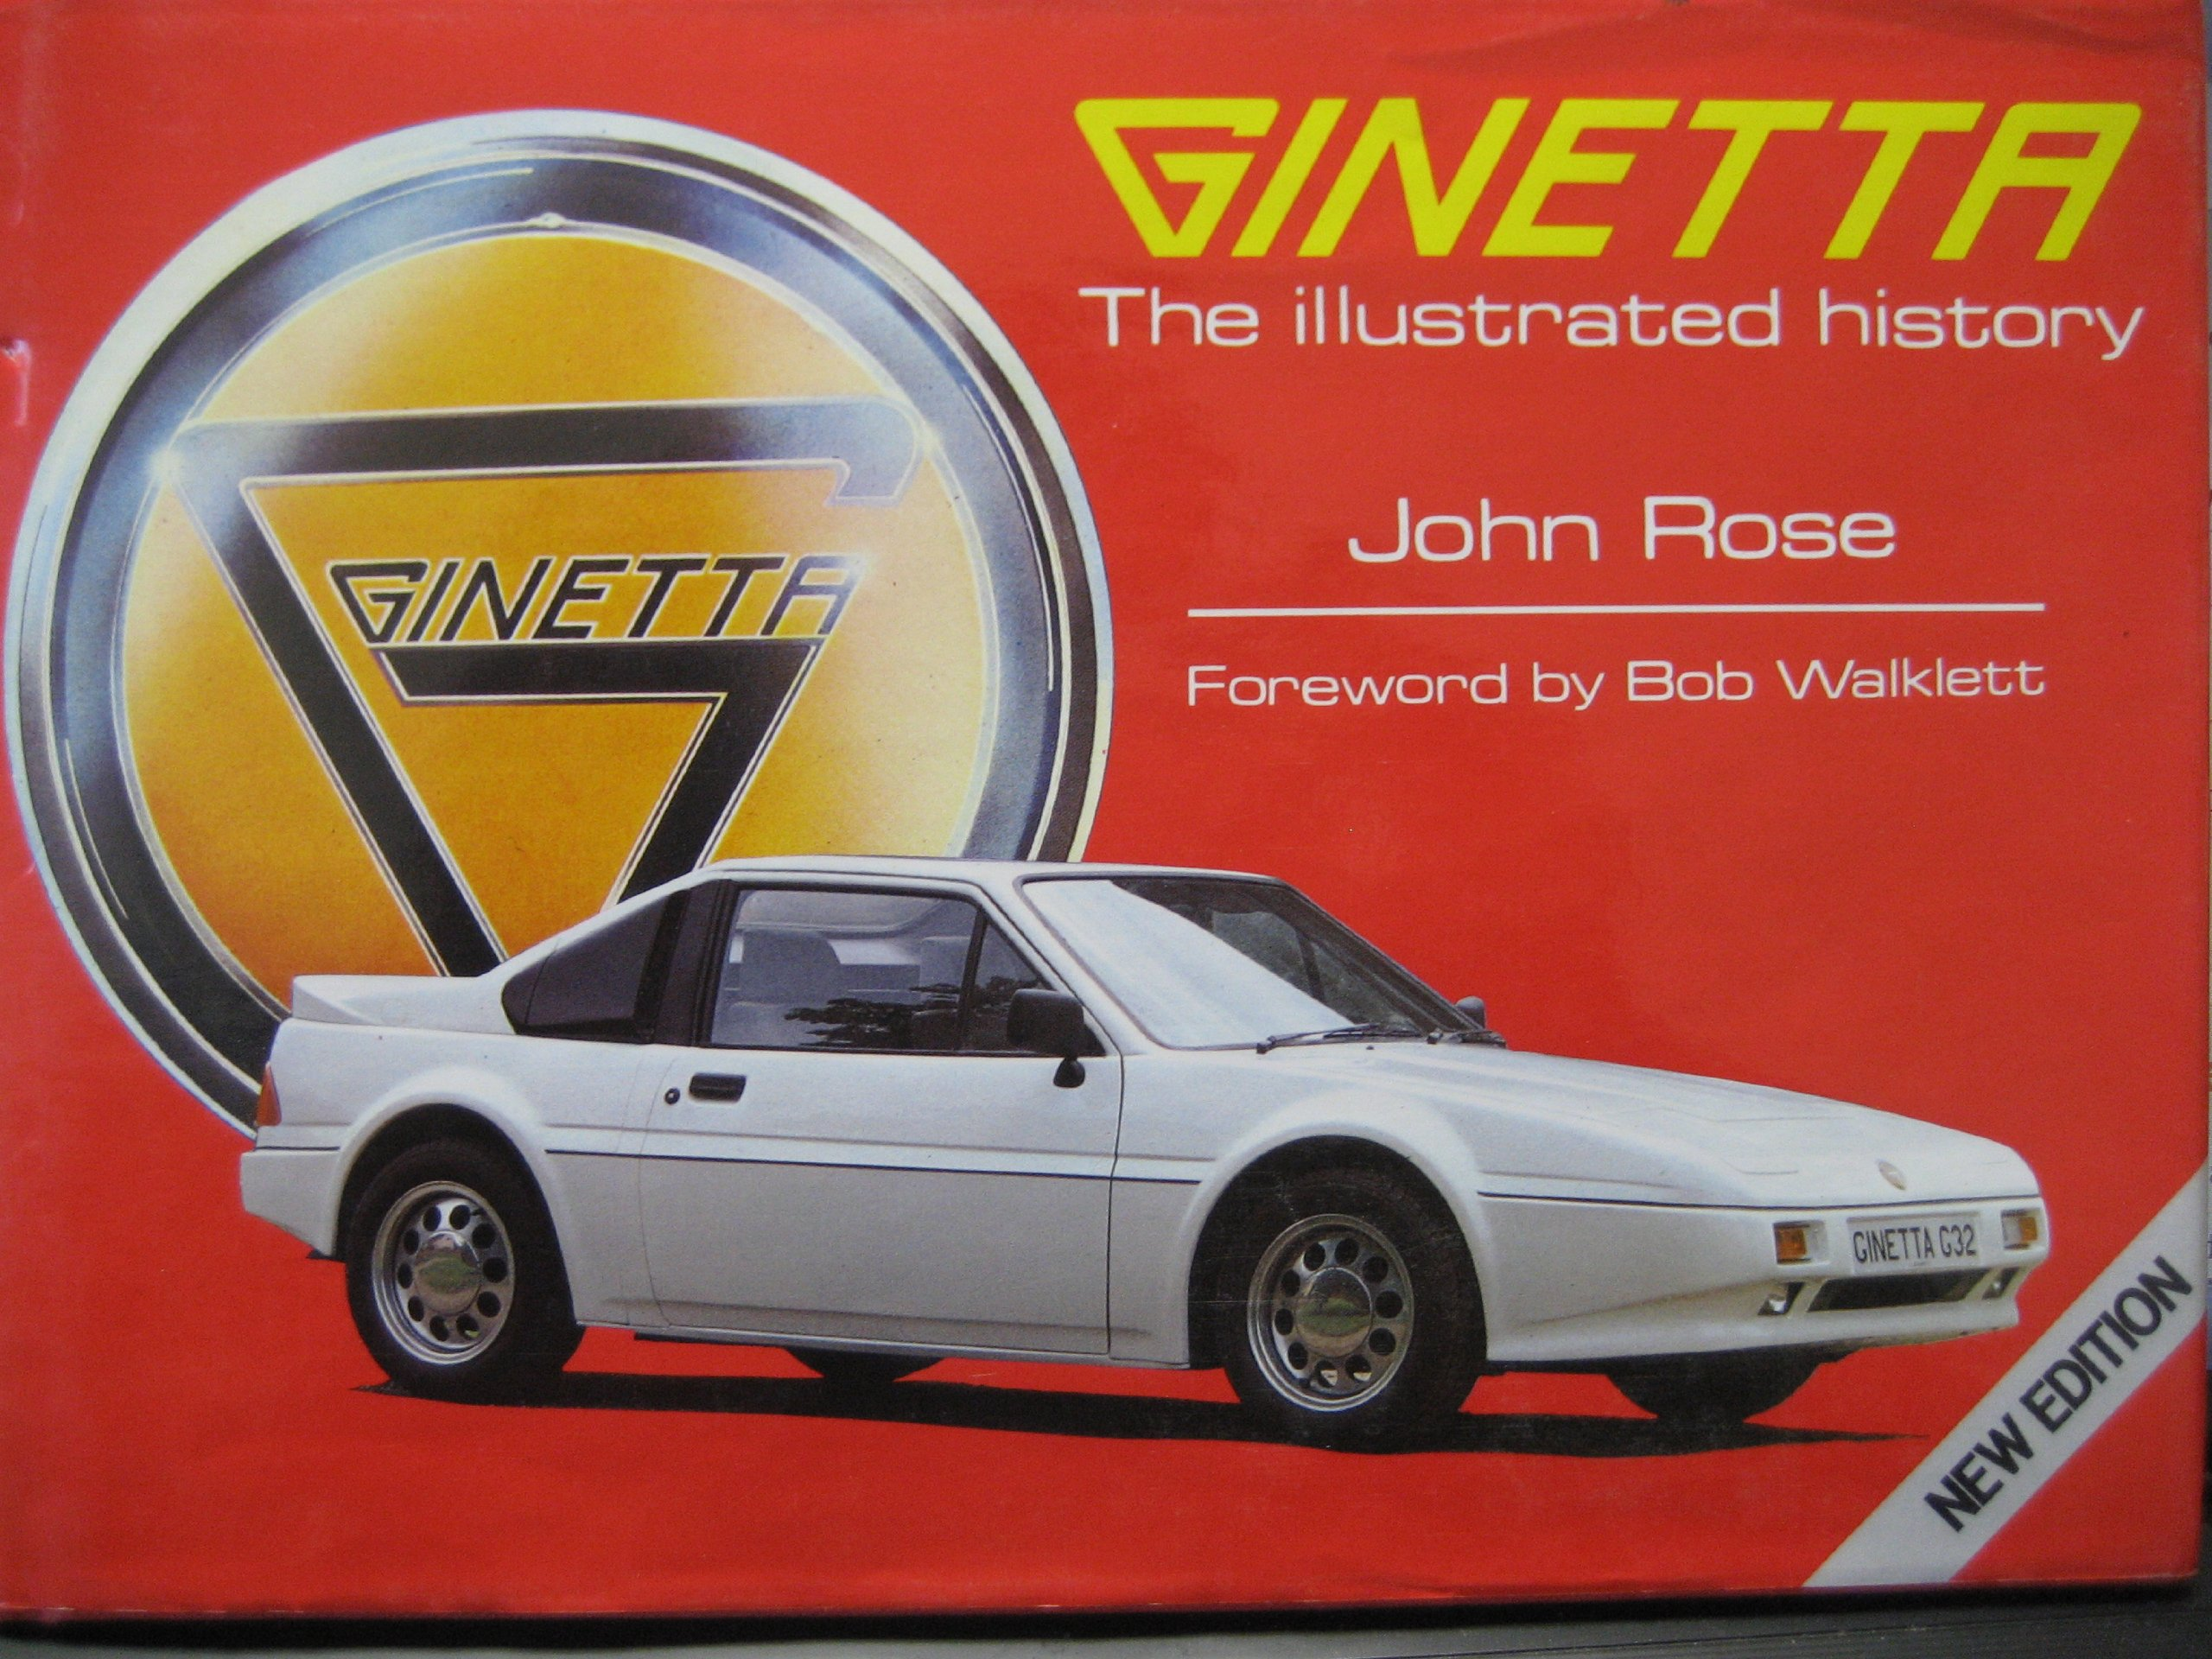 Ginetta The Illustrated History John Rose 9780854296859 Amazon